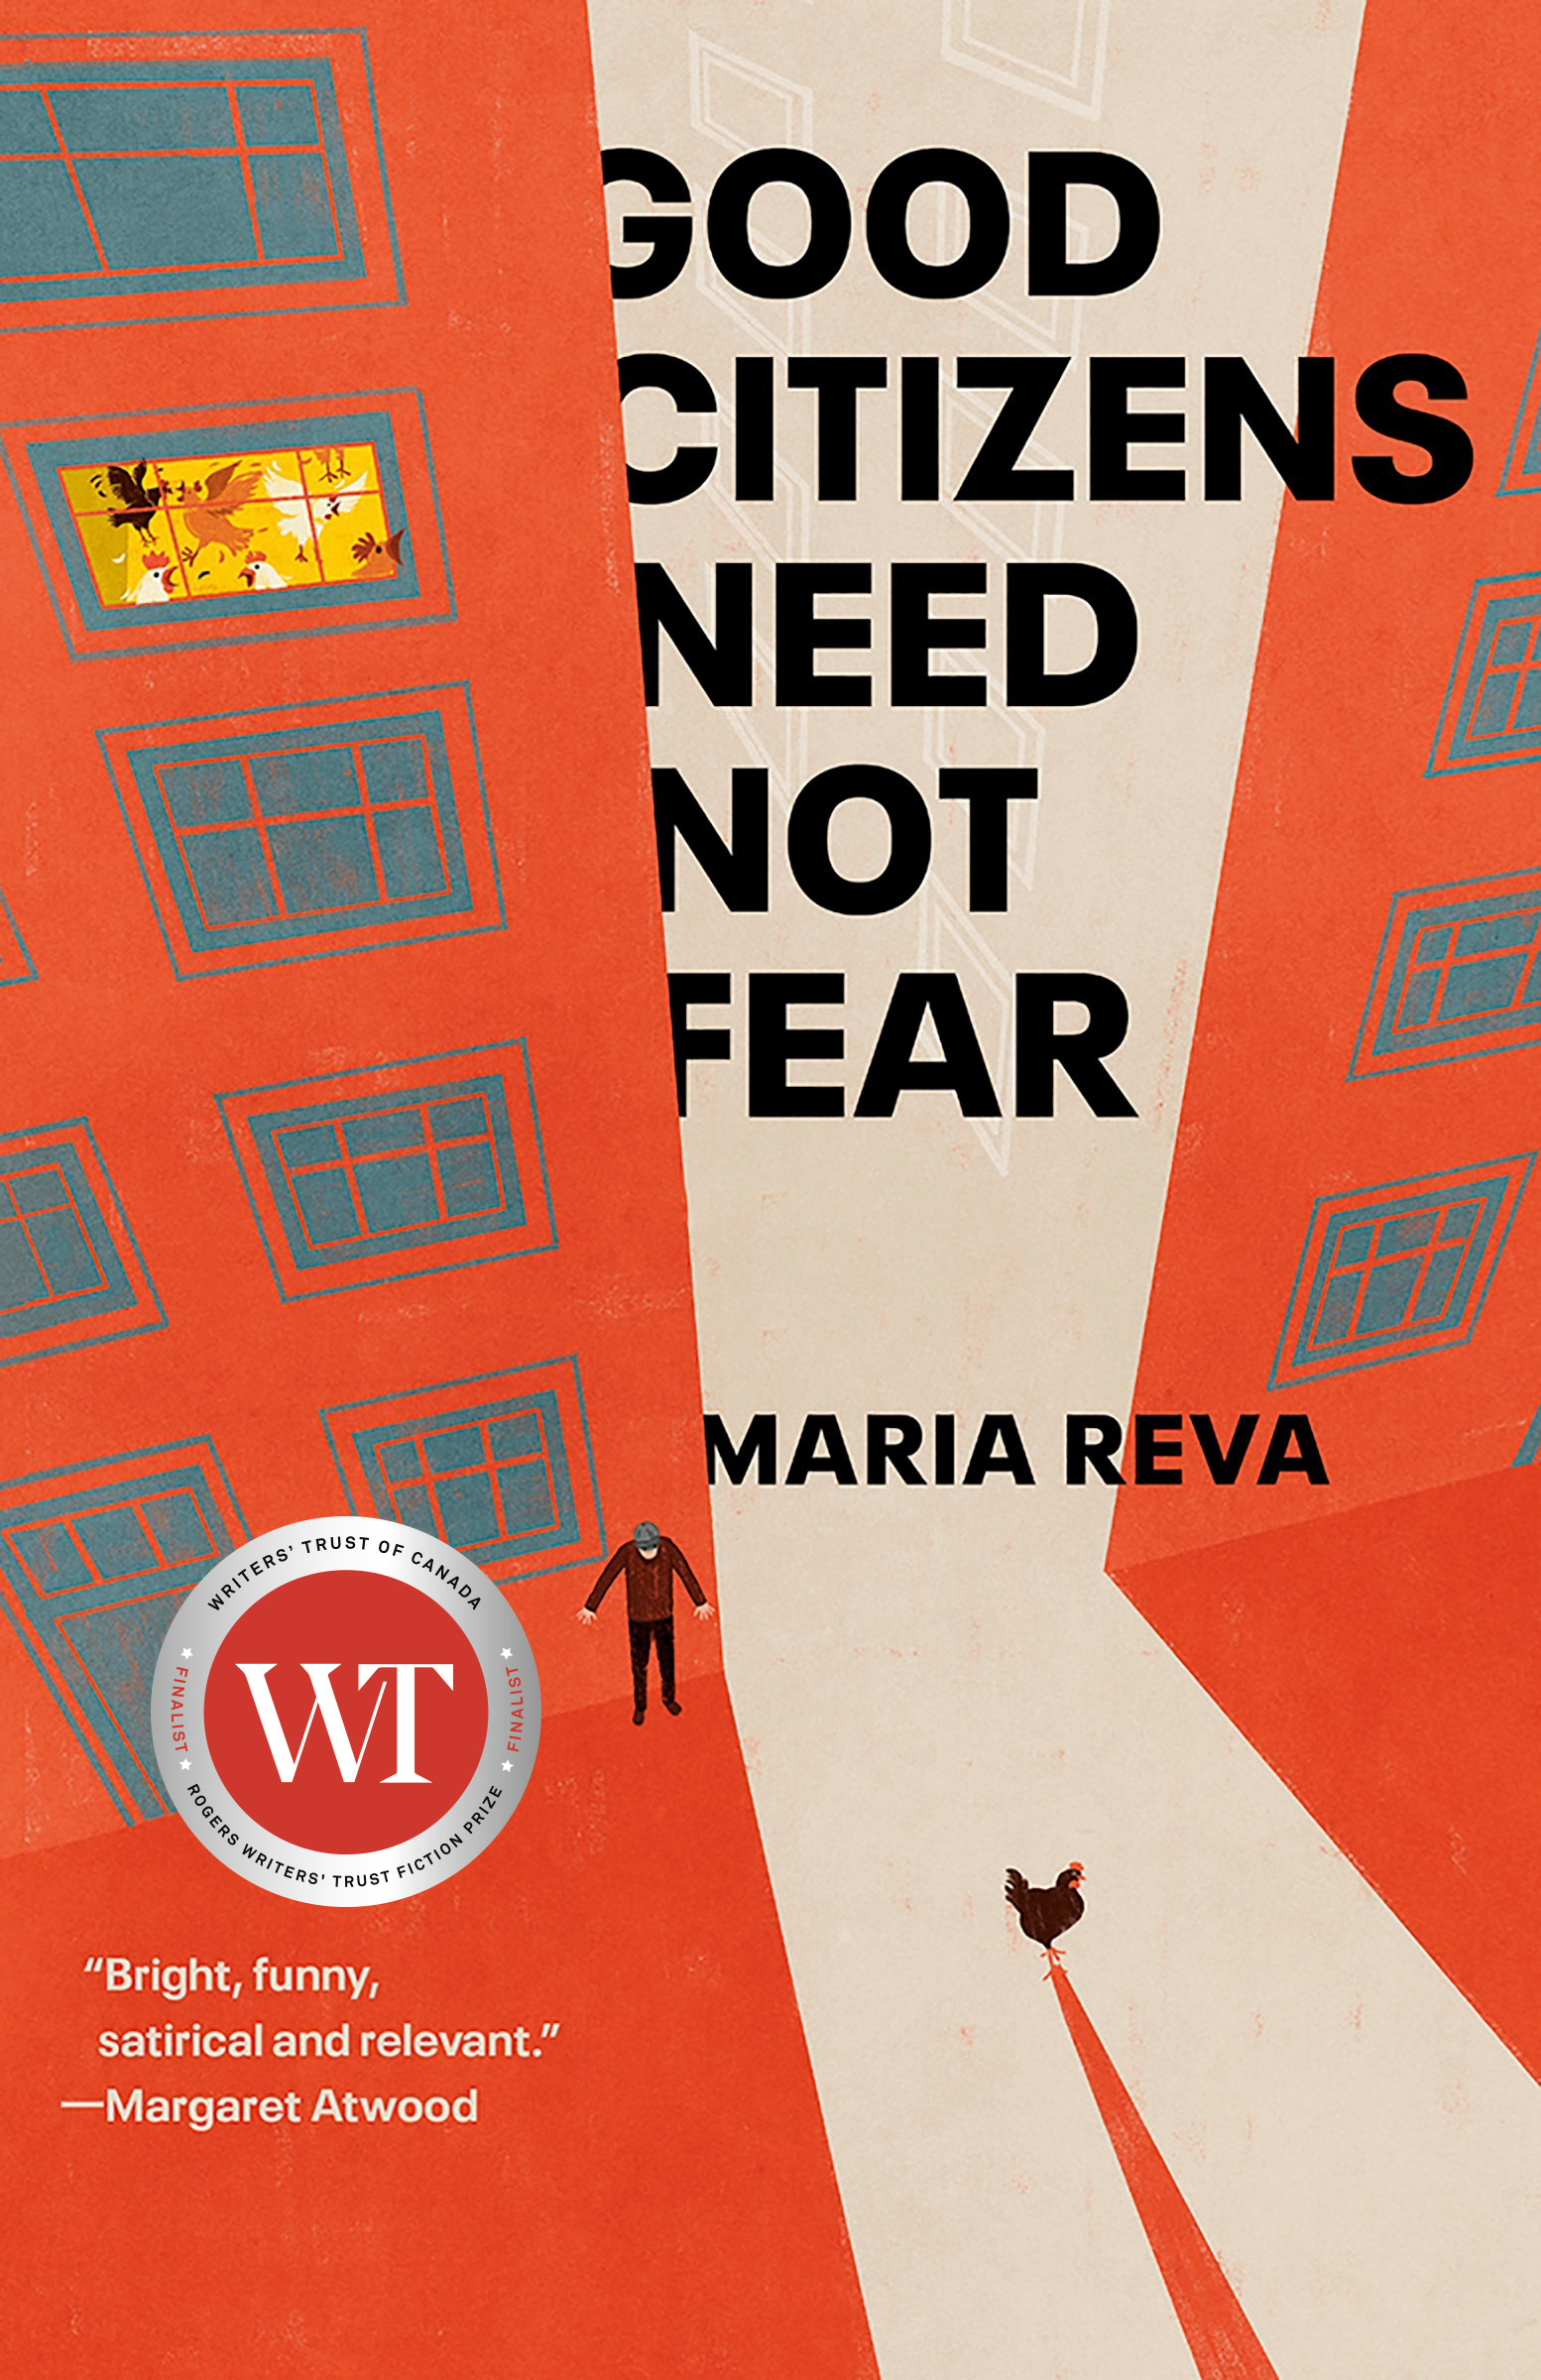 Good Citizens Need Not Fear | Novel